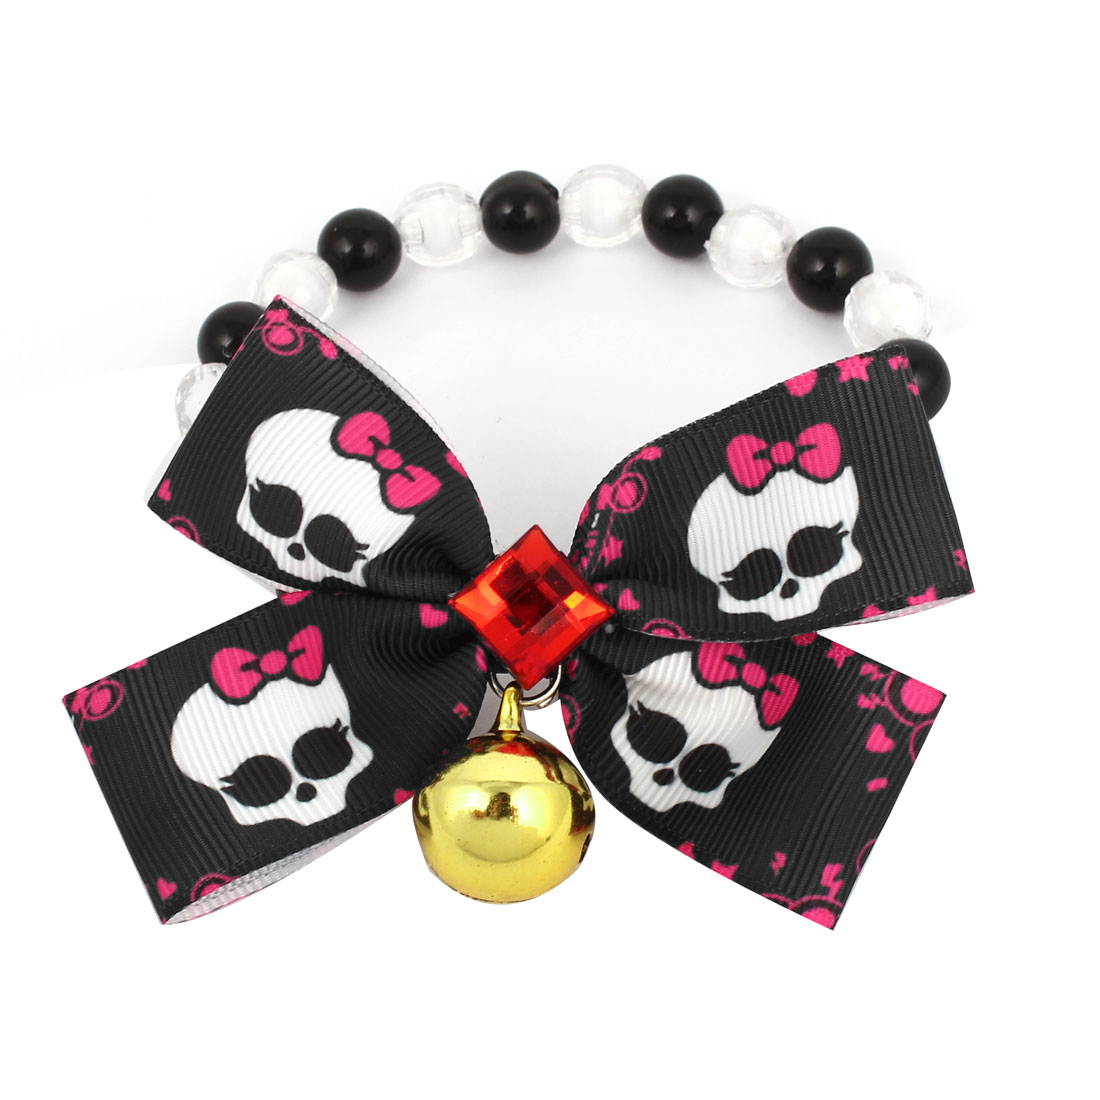 Metal Bell Pendant Bowtie Accent Pet Dog Plastic Beads Collar Necklace Black White XS